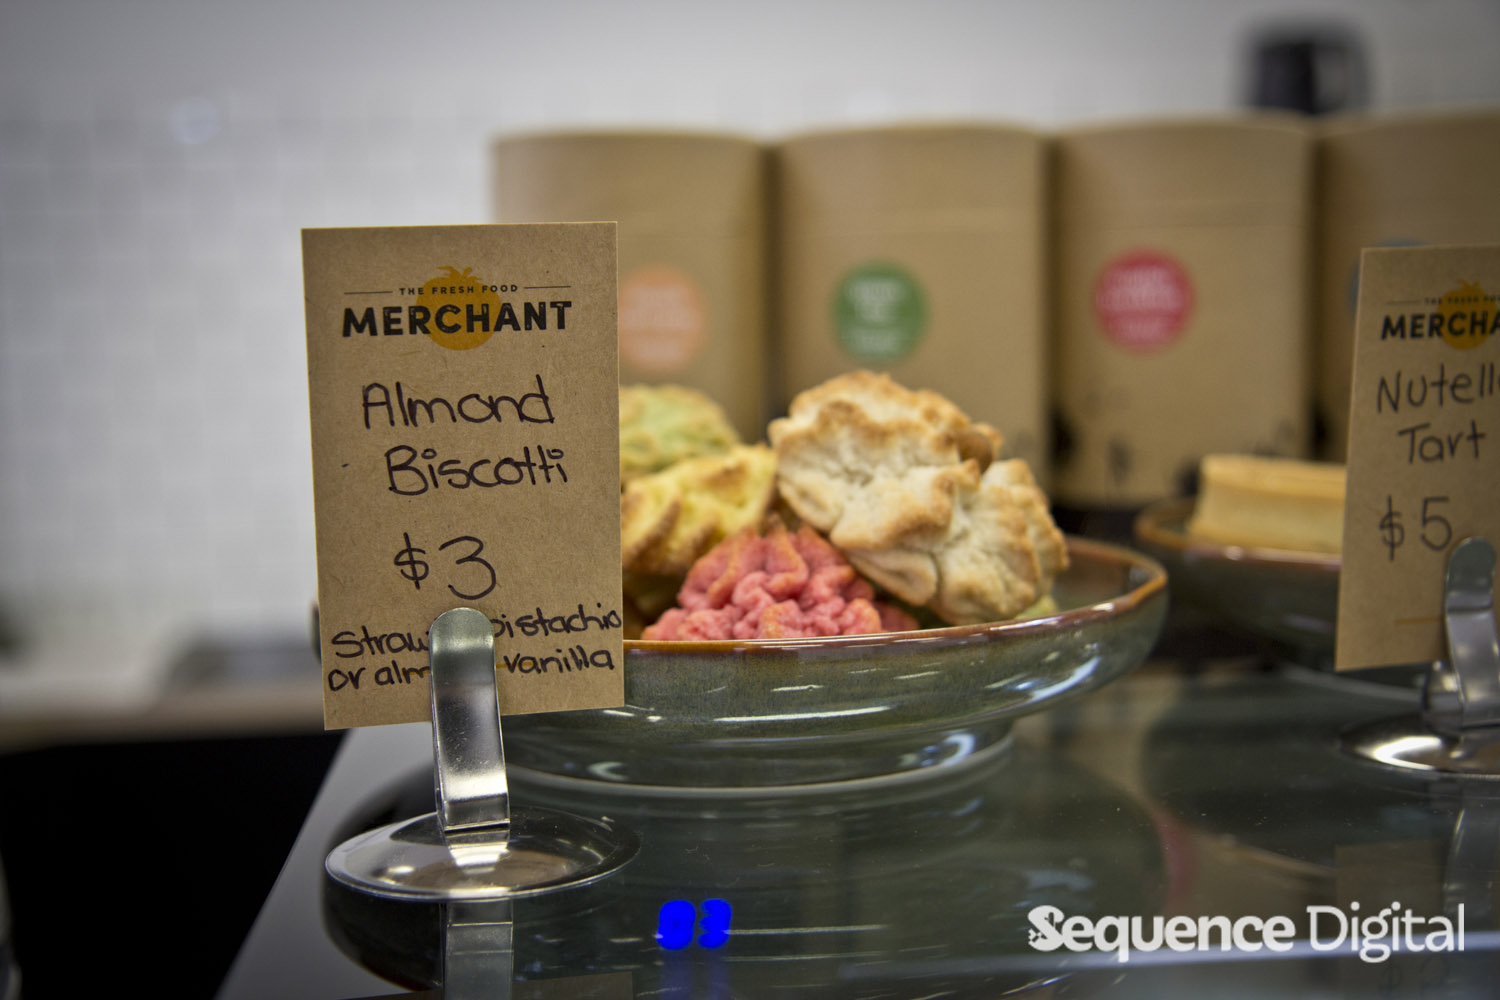 fresh-food-merchant-geelong-almond-biscotti